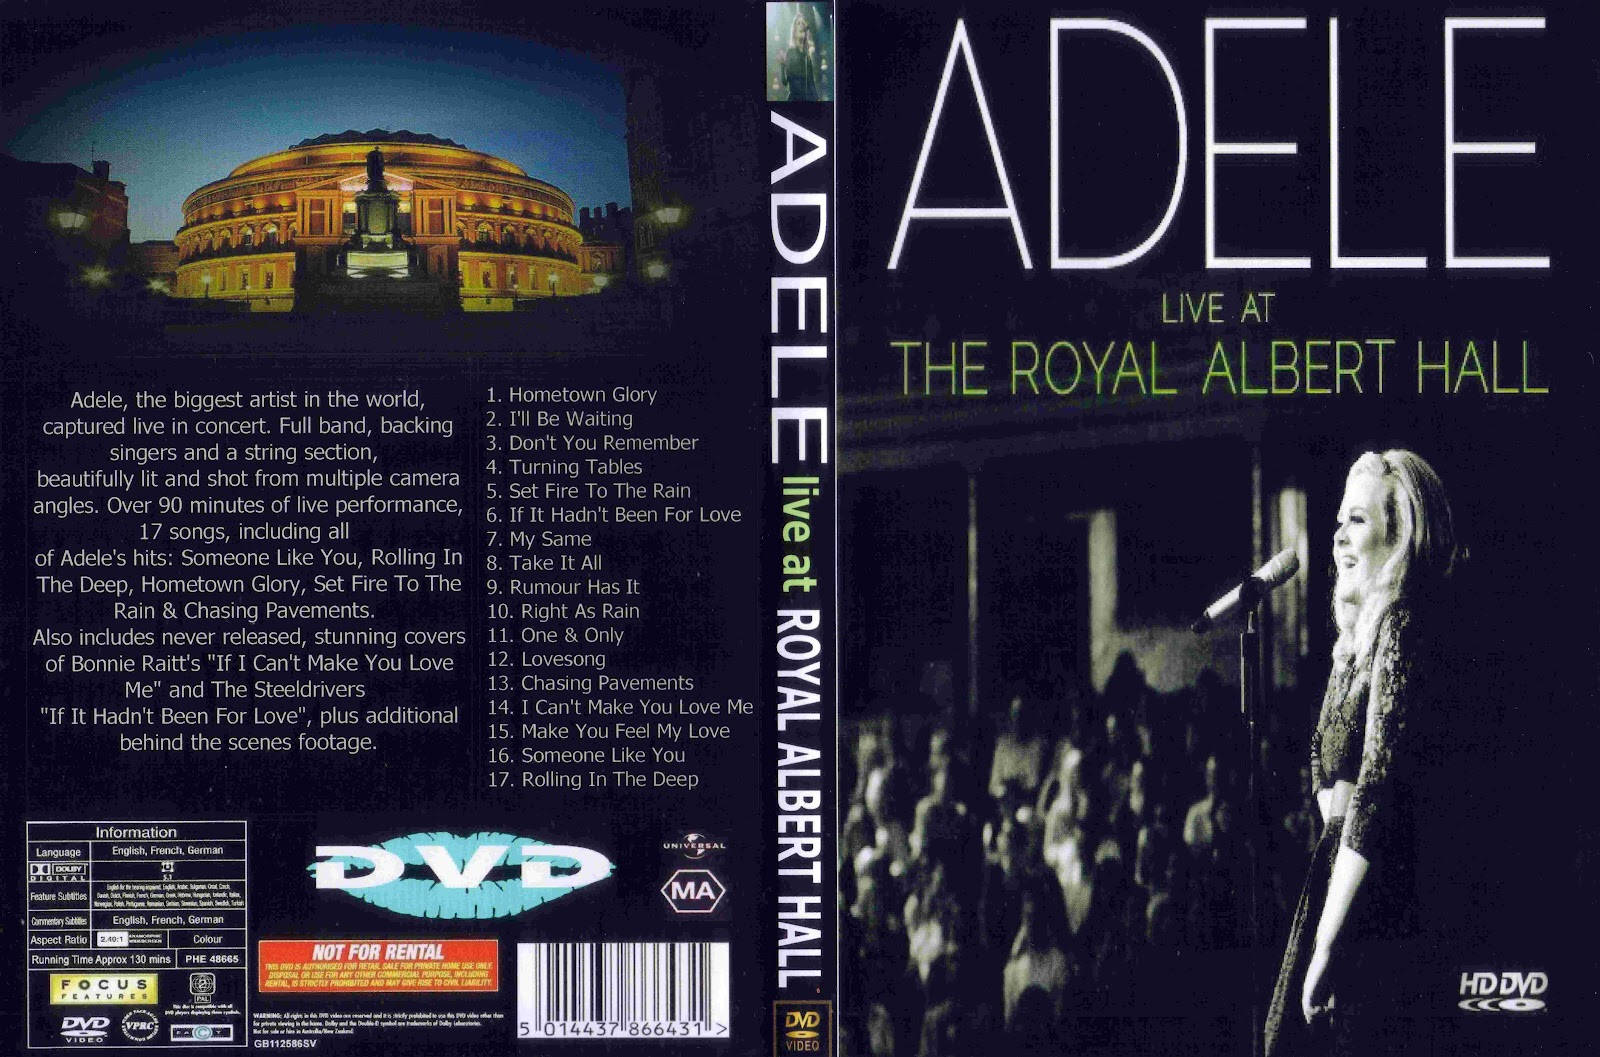 http://3.bp.blogspot.com/-eghUbd7ylUo/T5csSMV1n8I/AAAAAAAABII/A5HkD4TdNLo/s1600/Adele_-_Live_At_Royal_Albert_Hall_%282011%29-%5Bfront%5D-%5Bwww.FreeCovers.net%5D.jpg